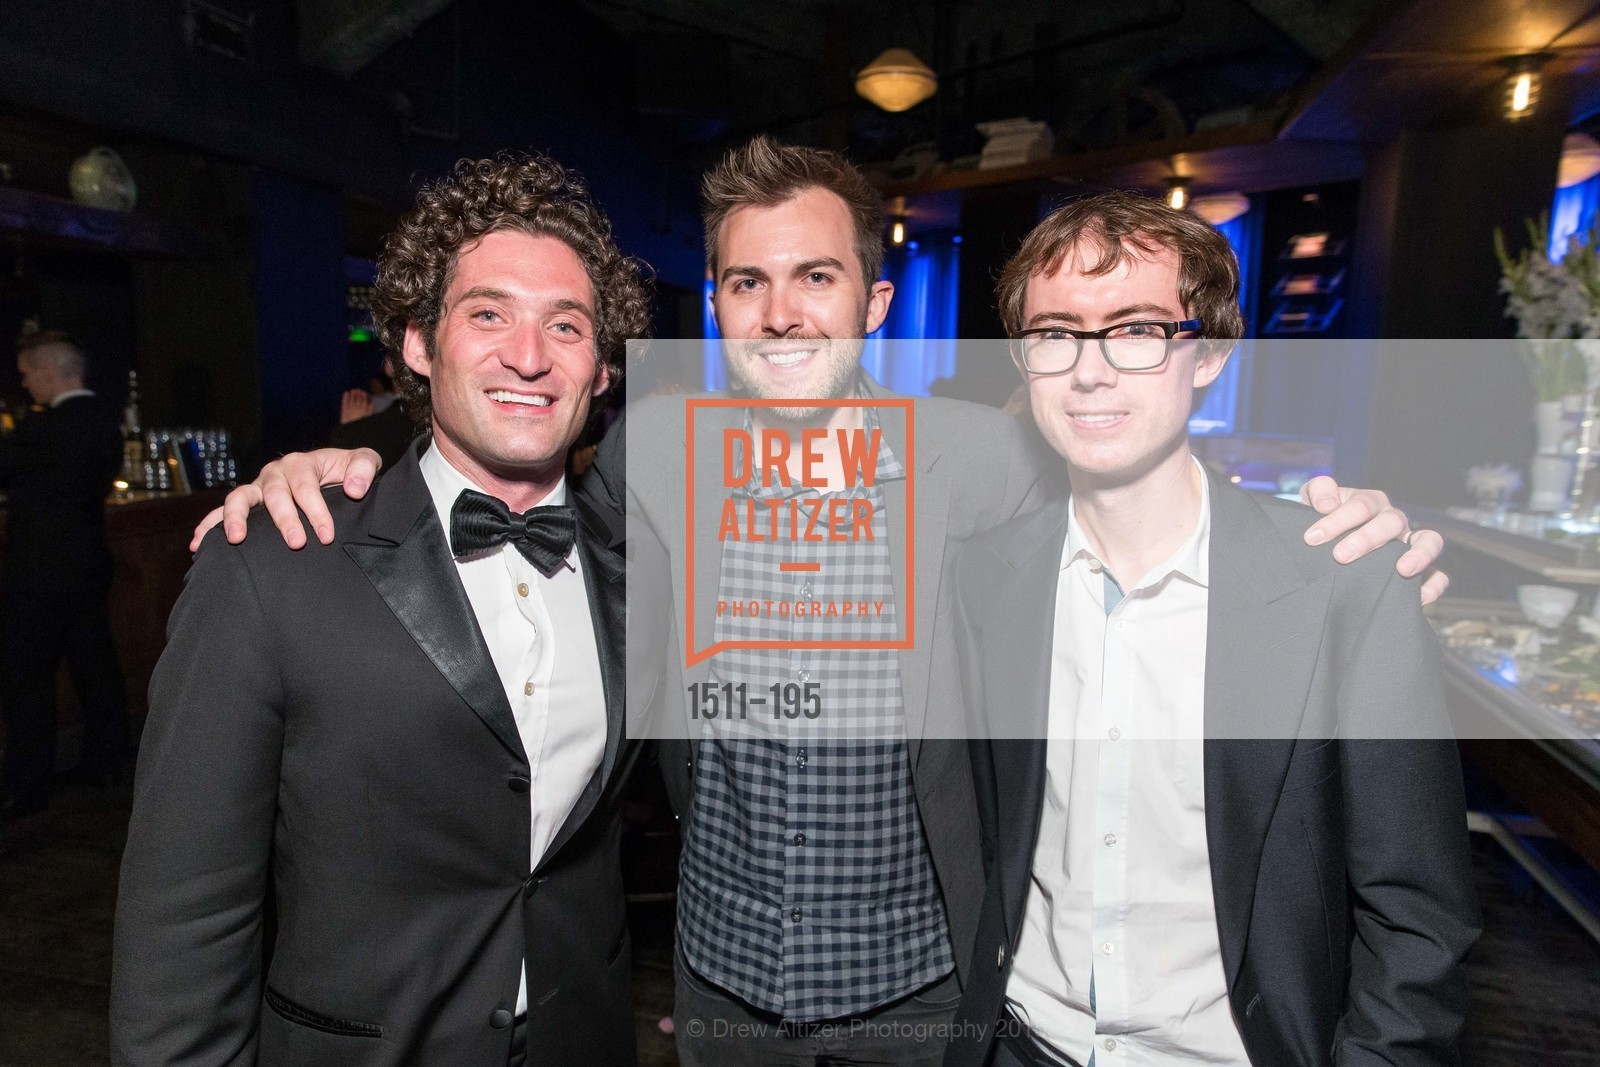 Justin Fichelson, John Uphoff, Edward King, Climb Real Estate and Sindeo Celebrate the Launch of Million Dollar Listing San Francisco, Local Edition San Francisco. 691 Market St, July 8th, 2015,Drew Altizer, Drew Altizer Photography, full-service agency, private events, San Francisco photographer, photographer california